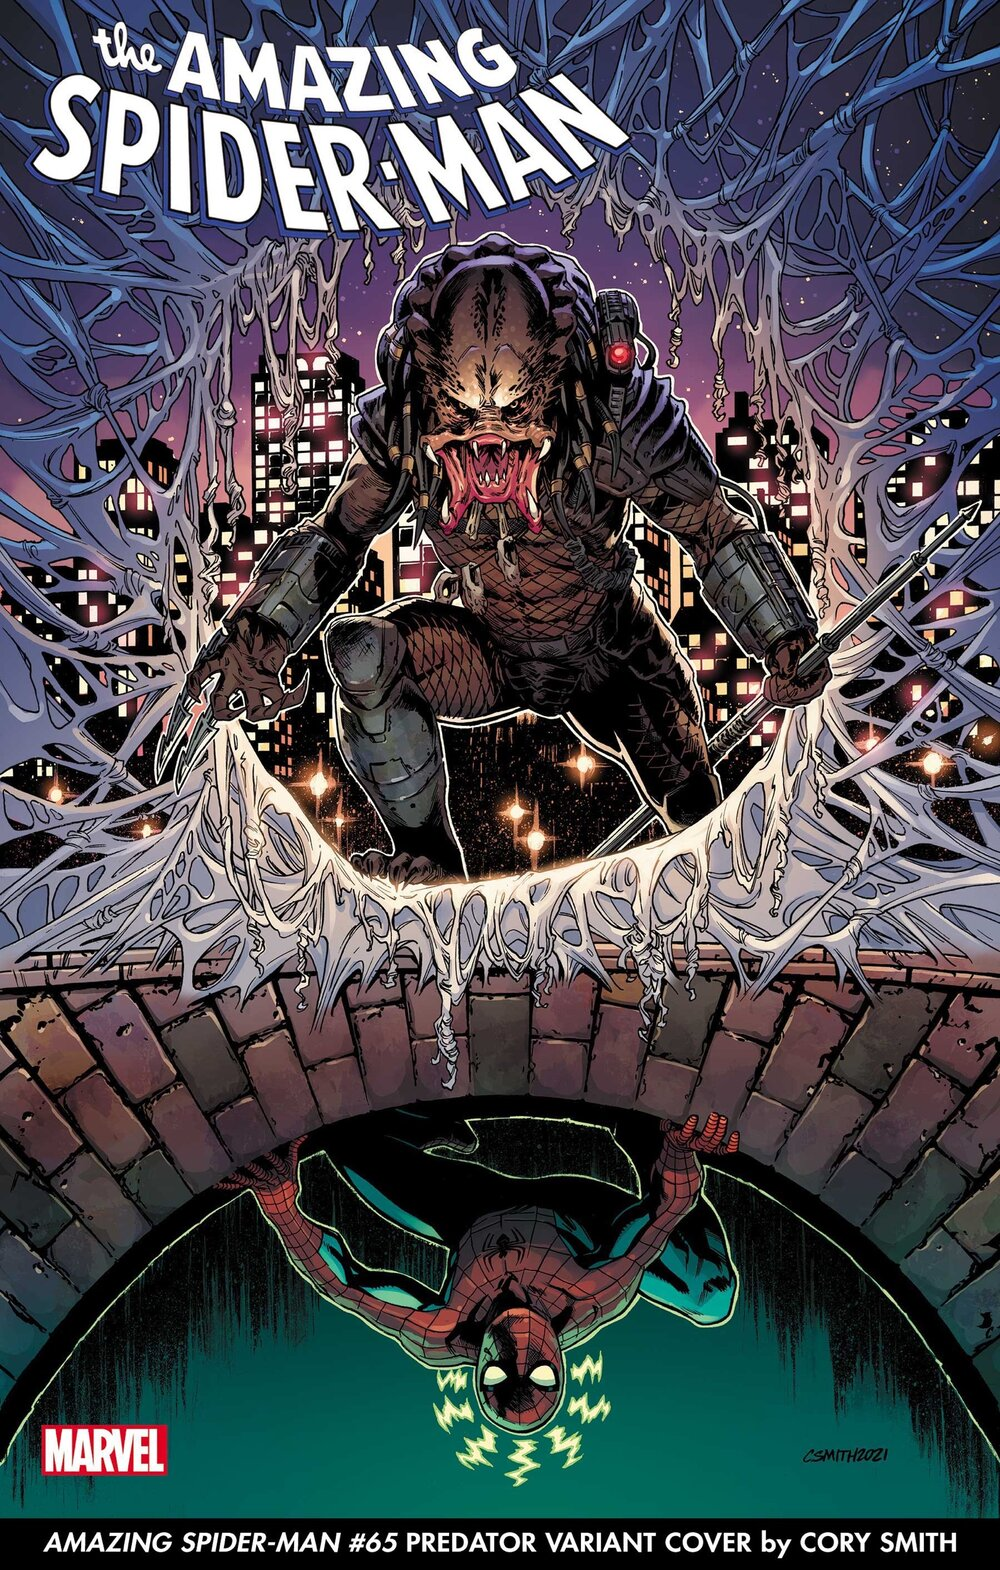 AMAZING SPIDER-MAN #65 PREDATOR VARIANT COVER by CORY SMITH